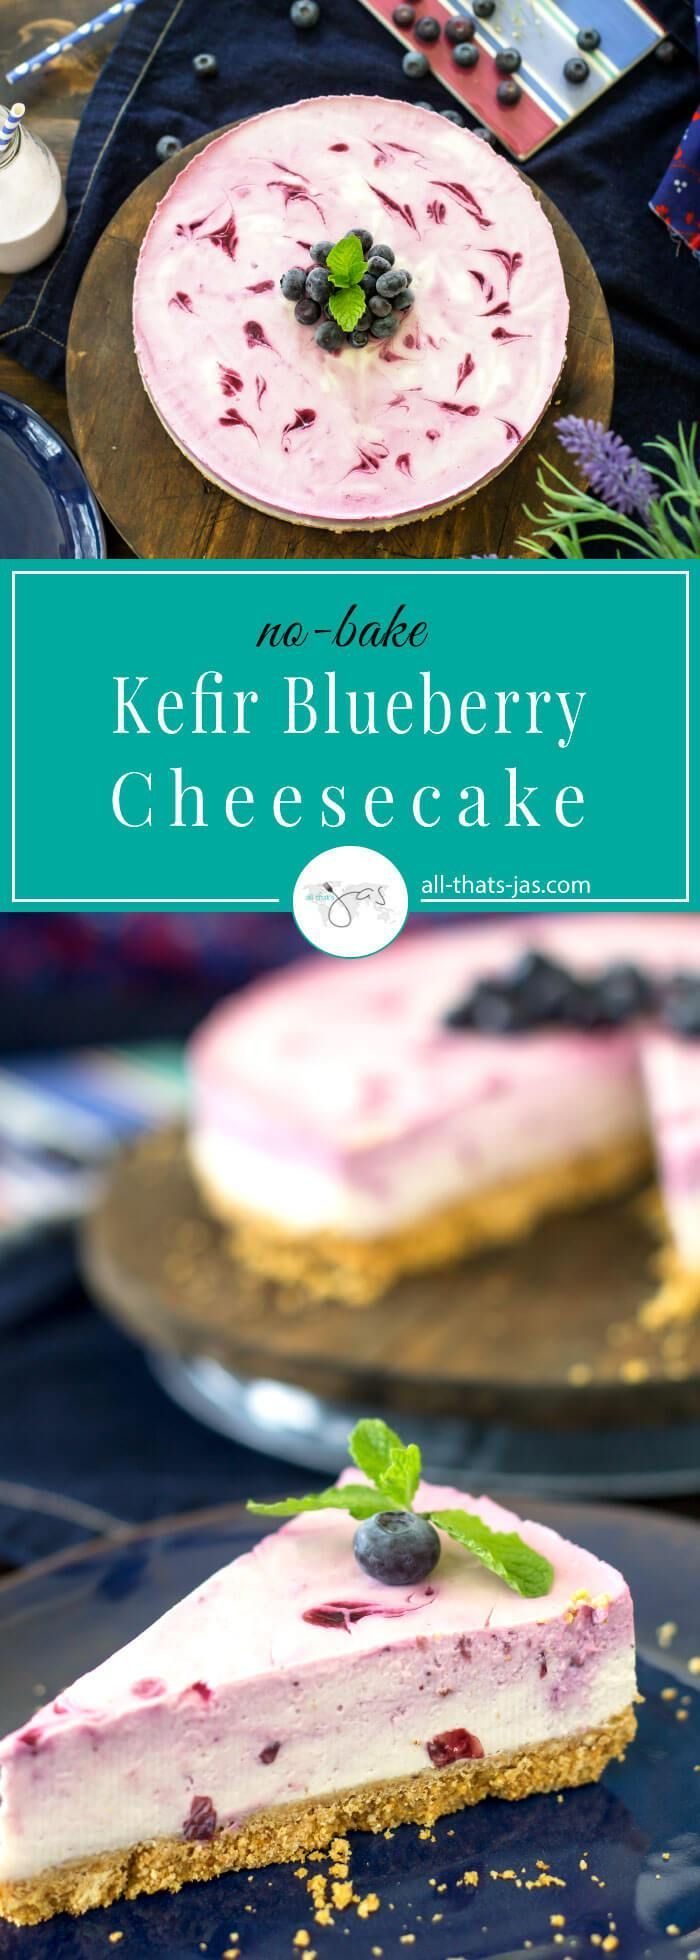 This easy probiotic no-bake cheesecake is made with blueberry kefir and it's gluten-free, super delicious, and good for you. | #NancysYogurt #kefir #ad #sponsored #nobake #cheesecake #glutenfree #probiotic #dessert #recipe #organic #healthfood #blueberry